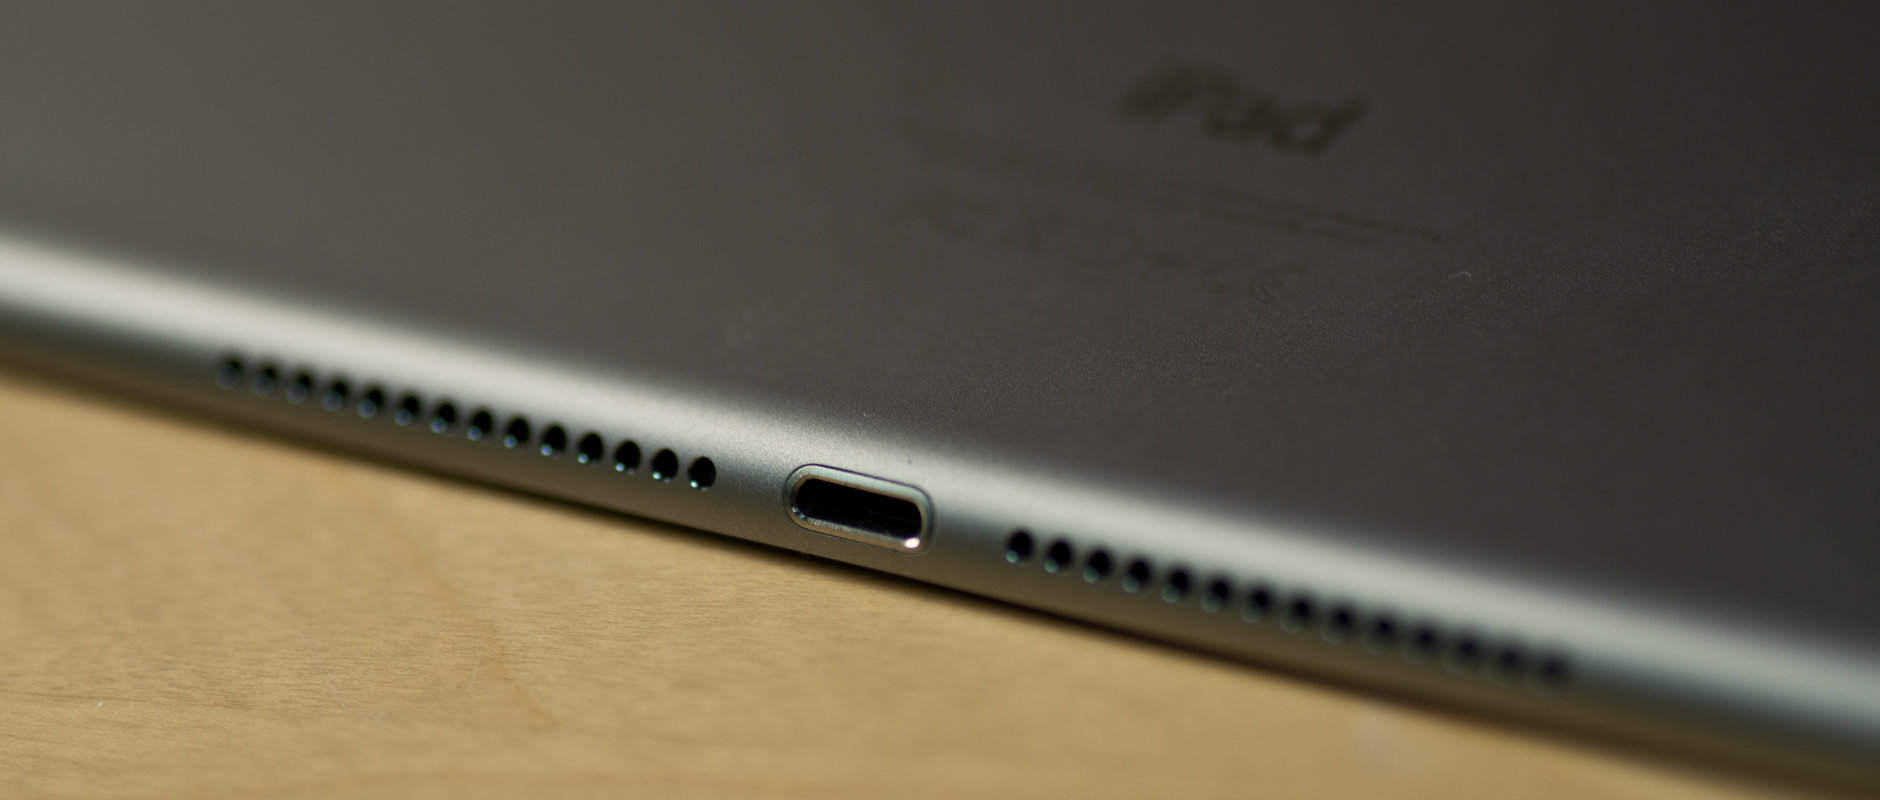 A photograph of the Apple iPad Air 2's speaker.